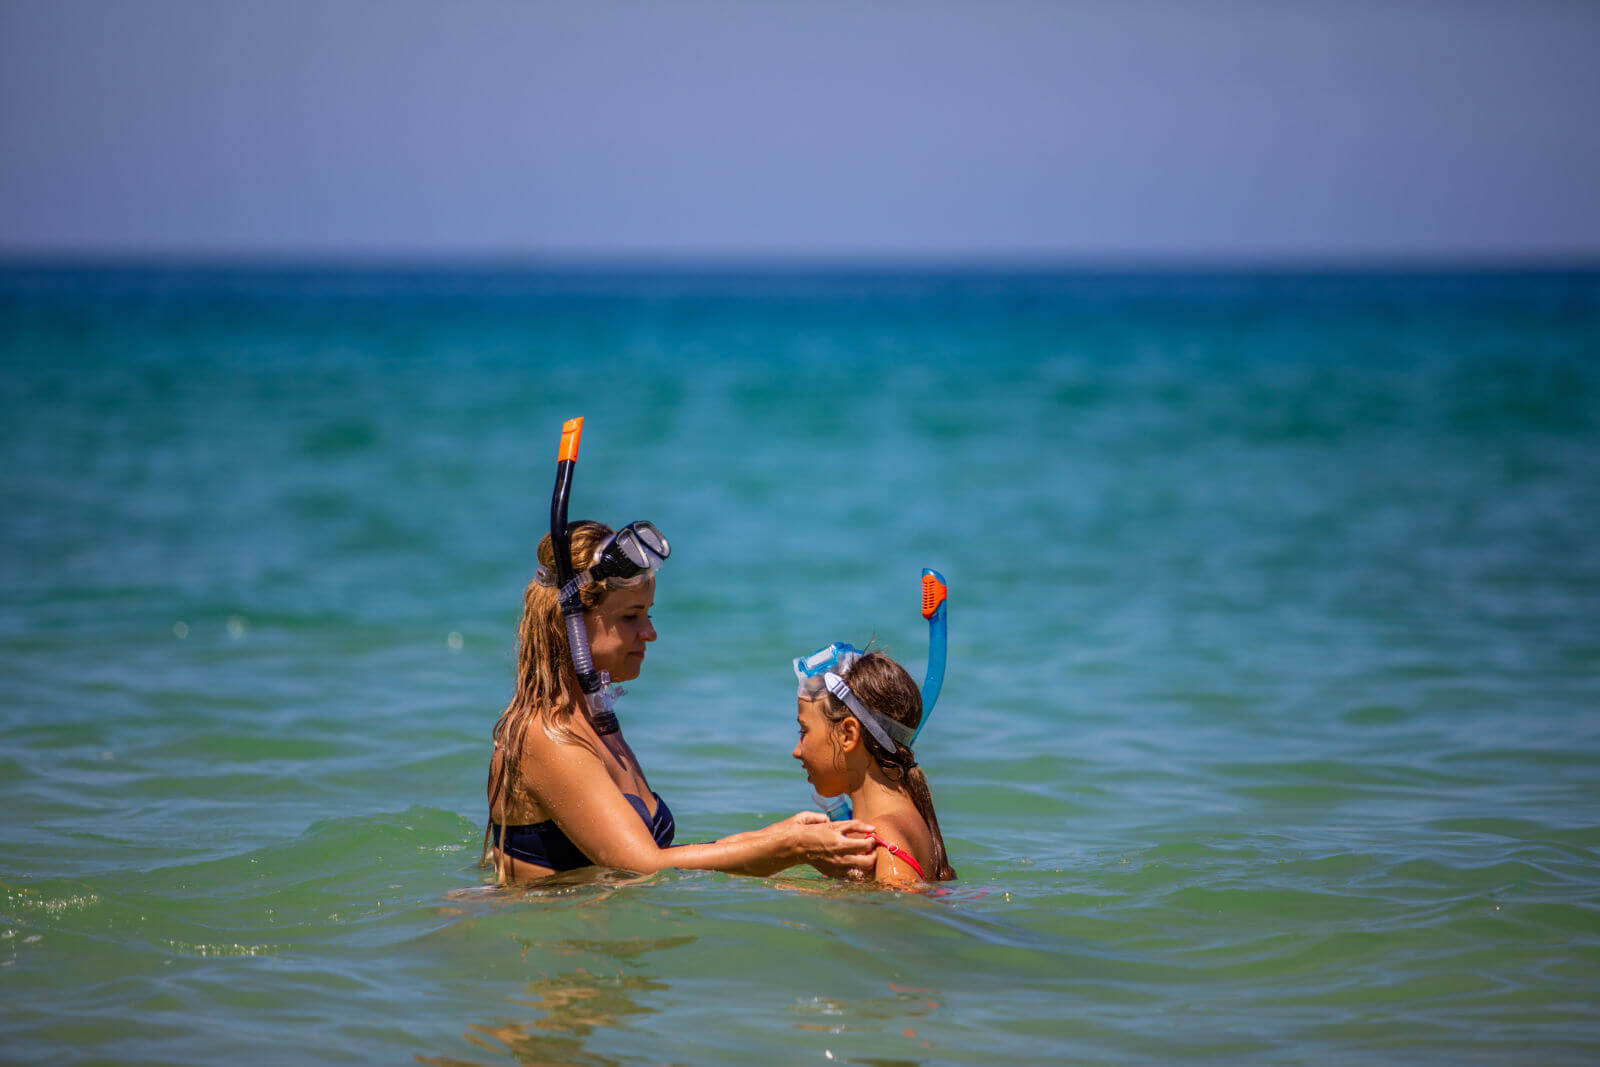 Tps for snorkeling at Point of Rocks near Crescent Beach in Siesta Key, Florida.